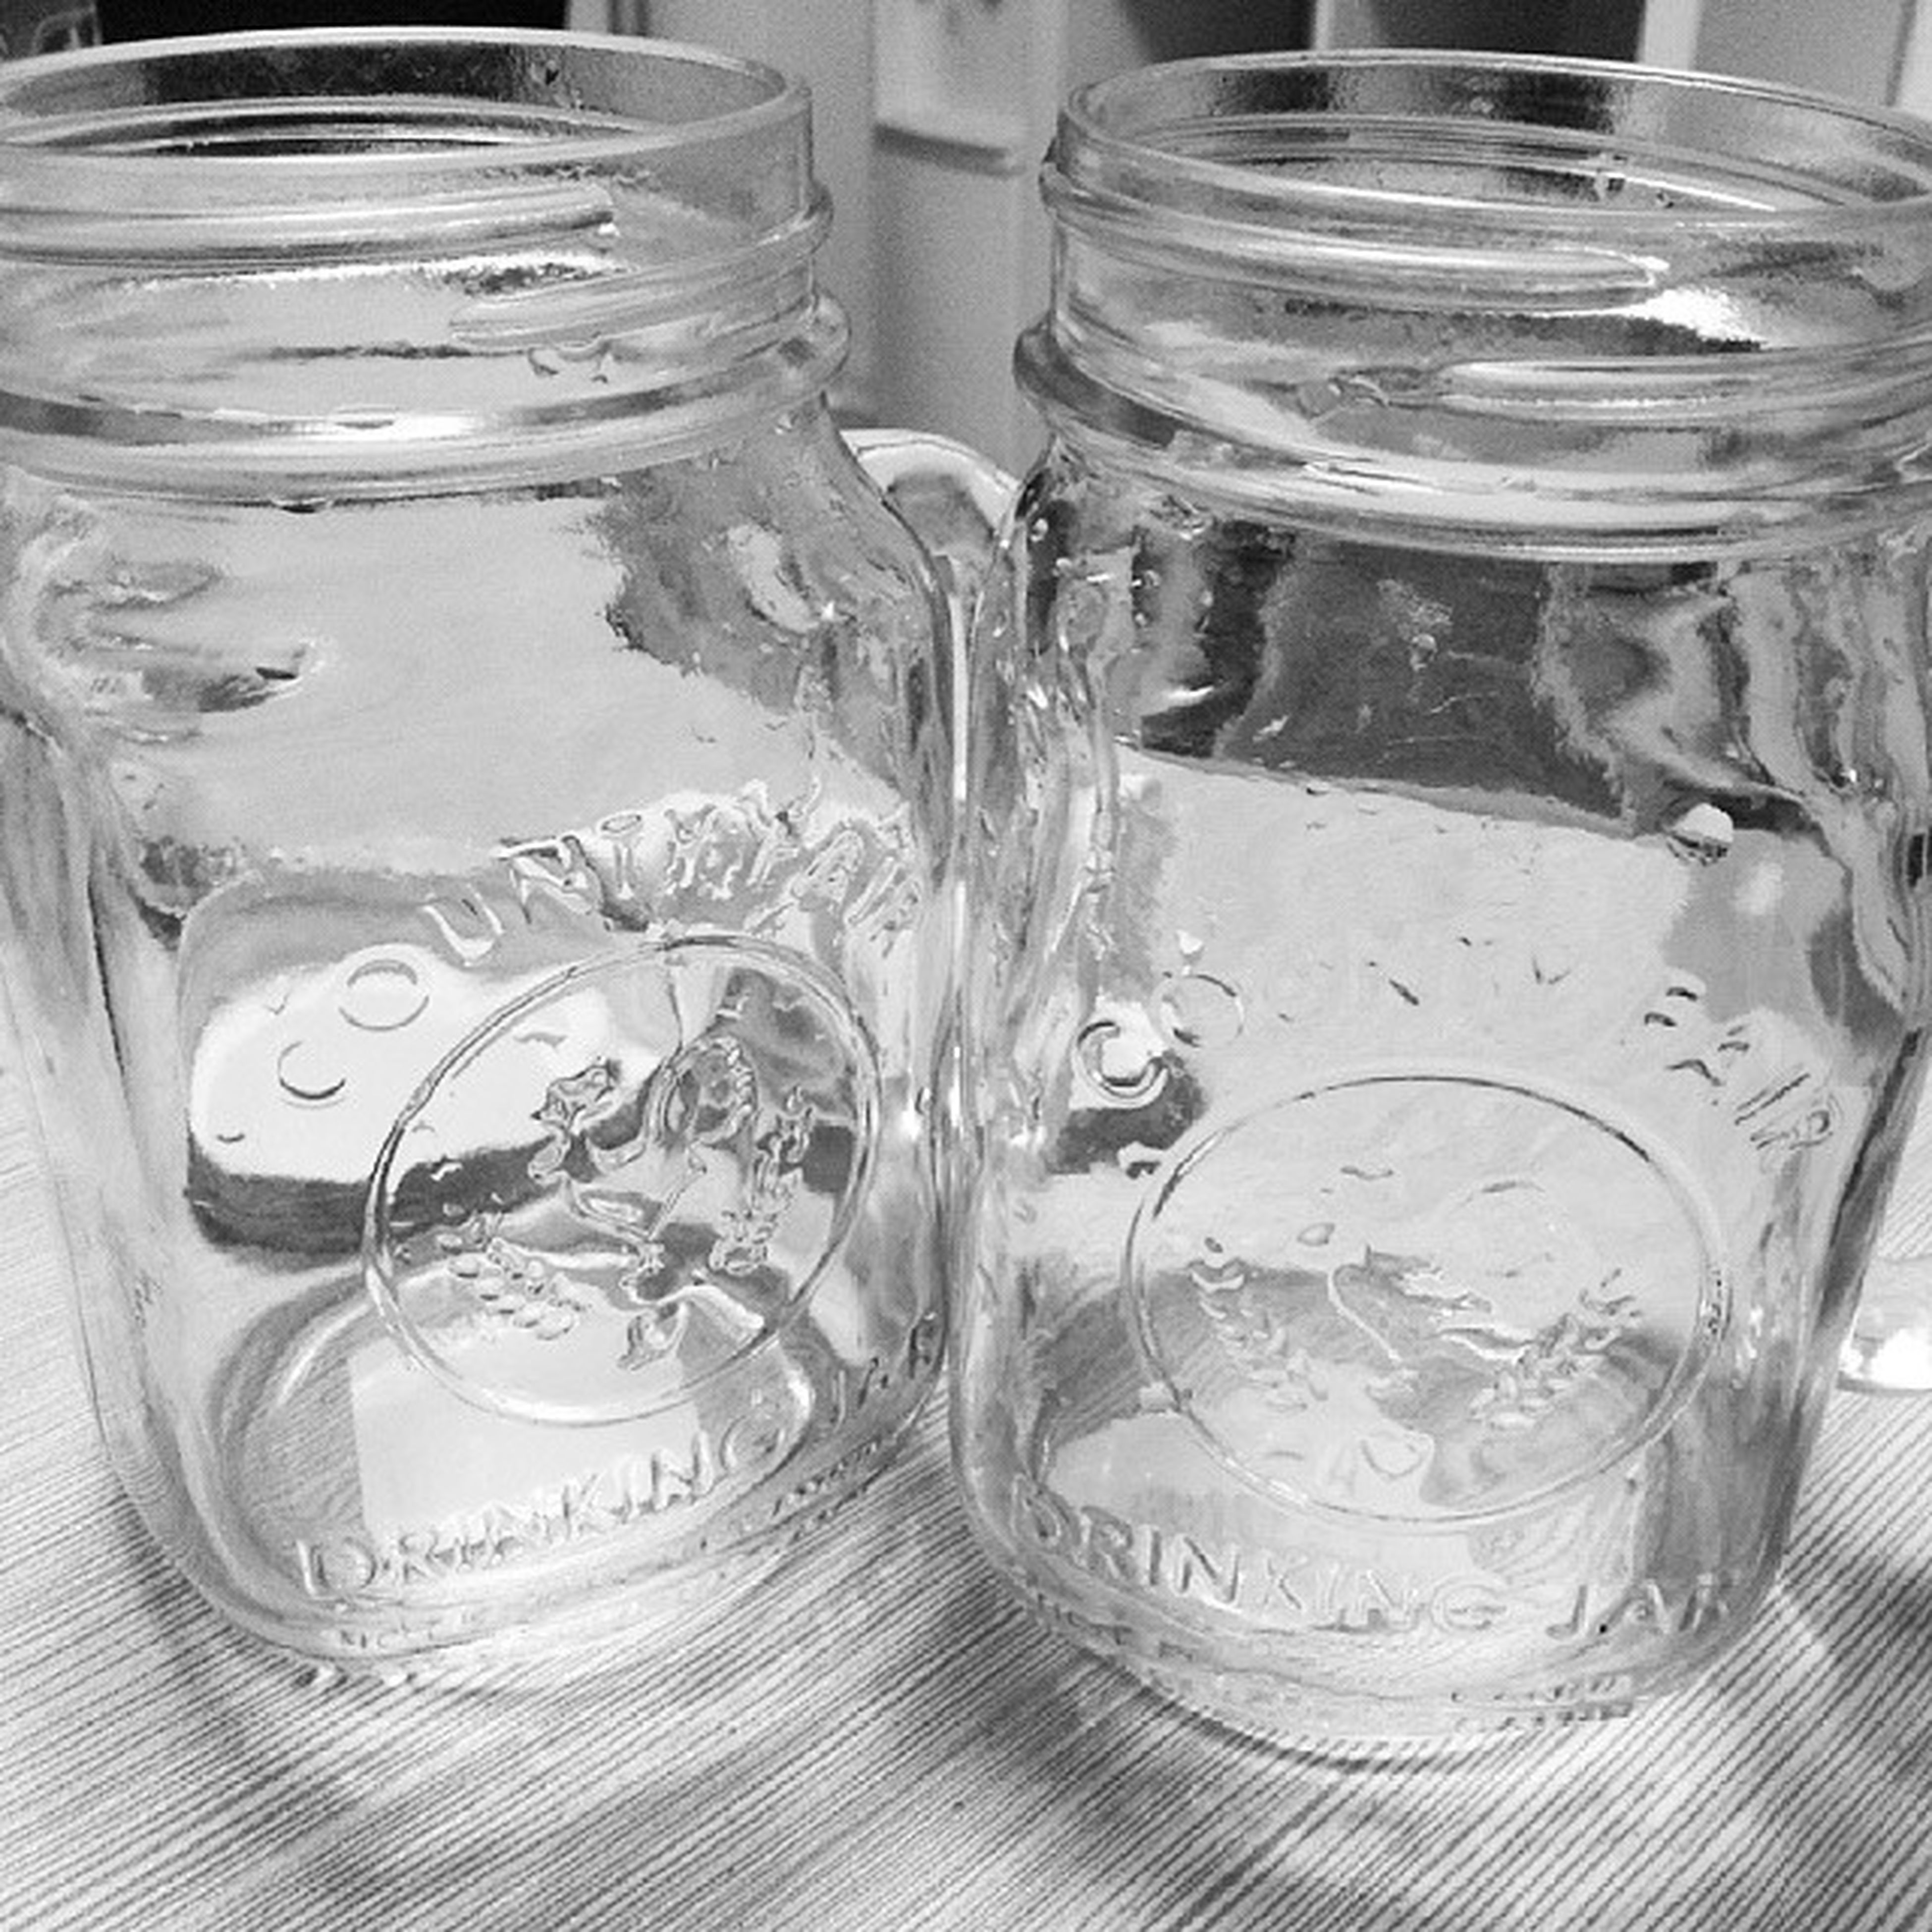 indoors, glass - material, table, drinking glass, still life, transparent, close-up, drink, food and drink, refreshment, jar, freshness, glass, reflection, no people, water, wineglass, high angle view, empty, focus on foreground